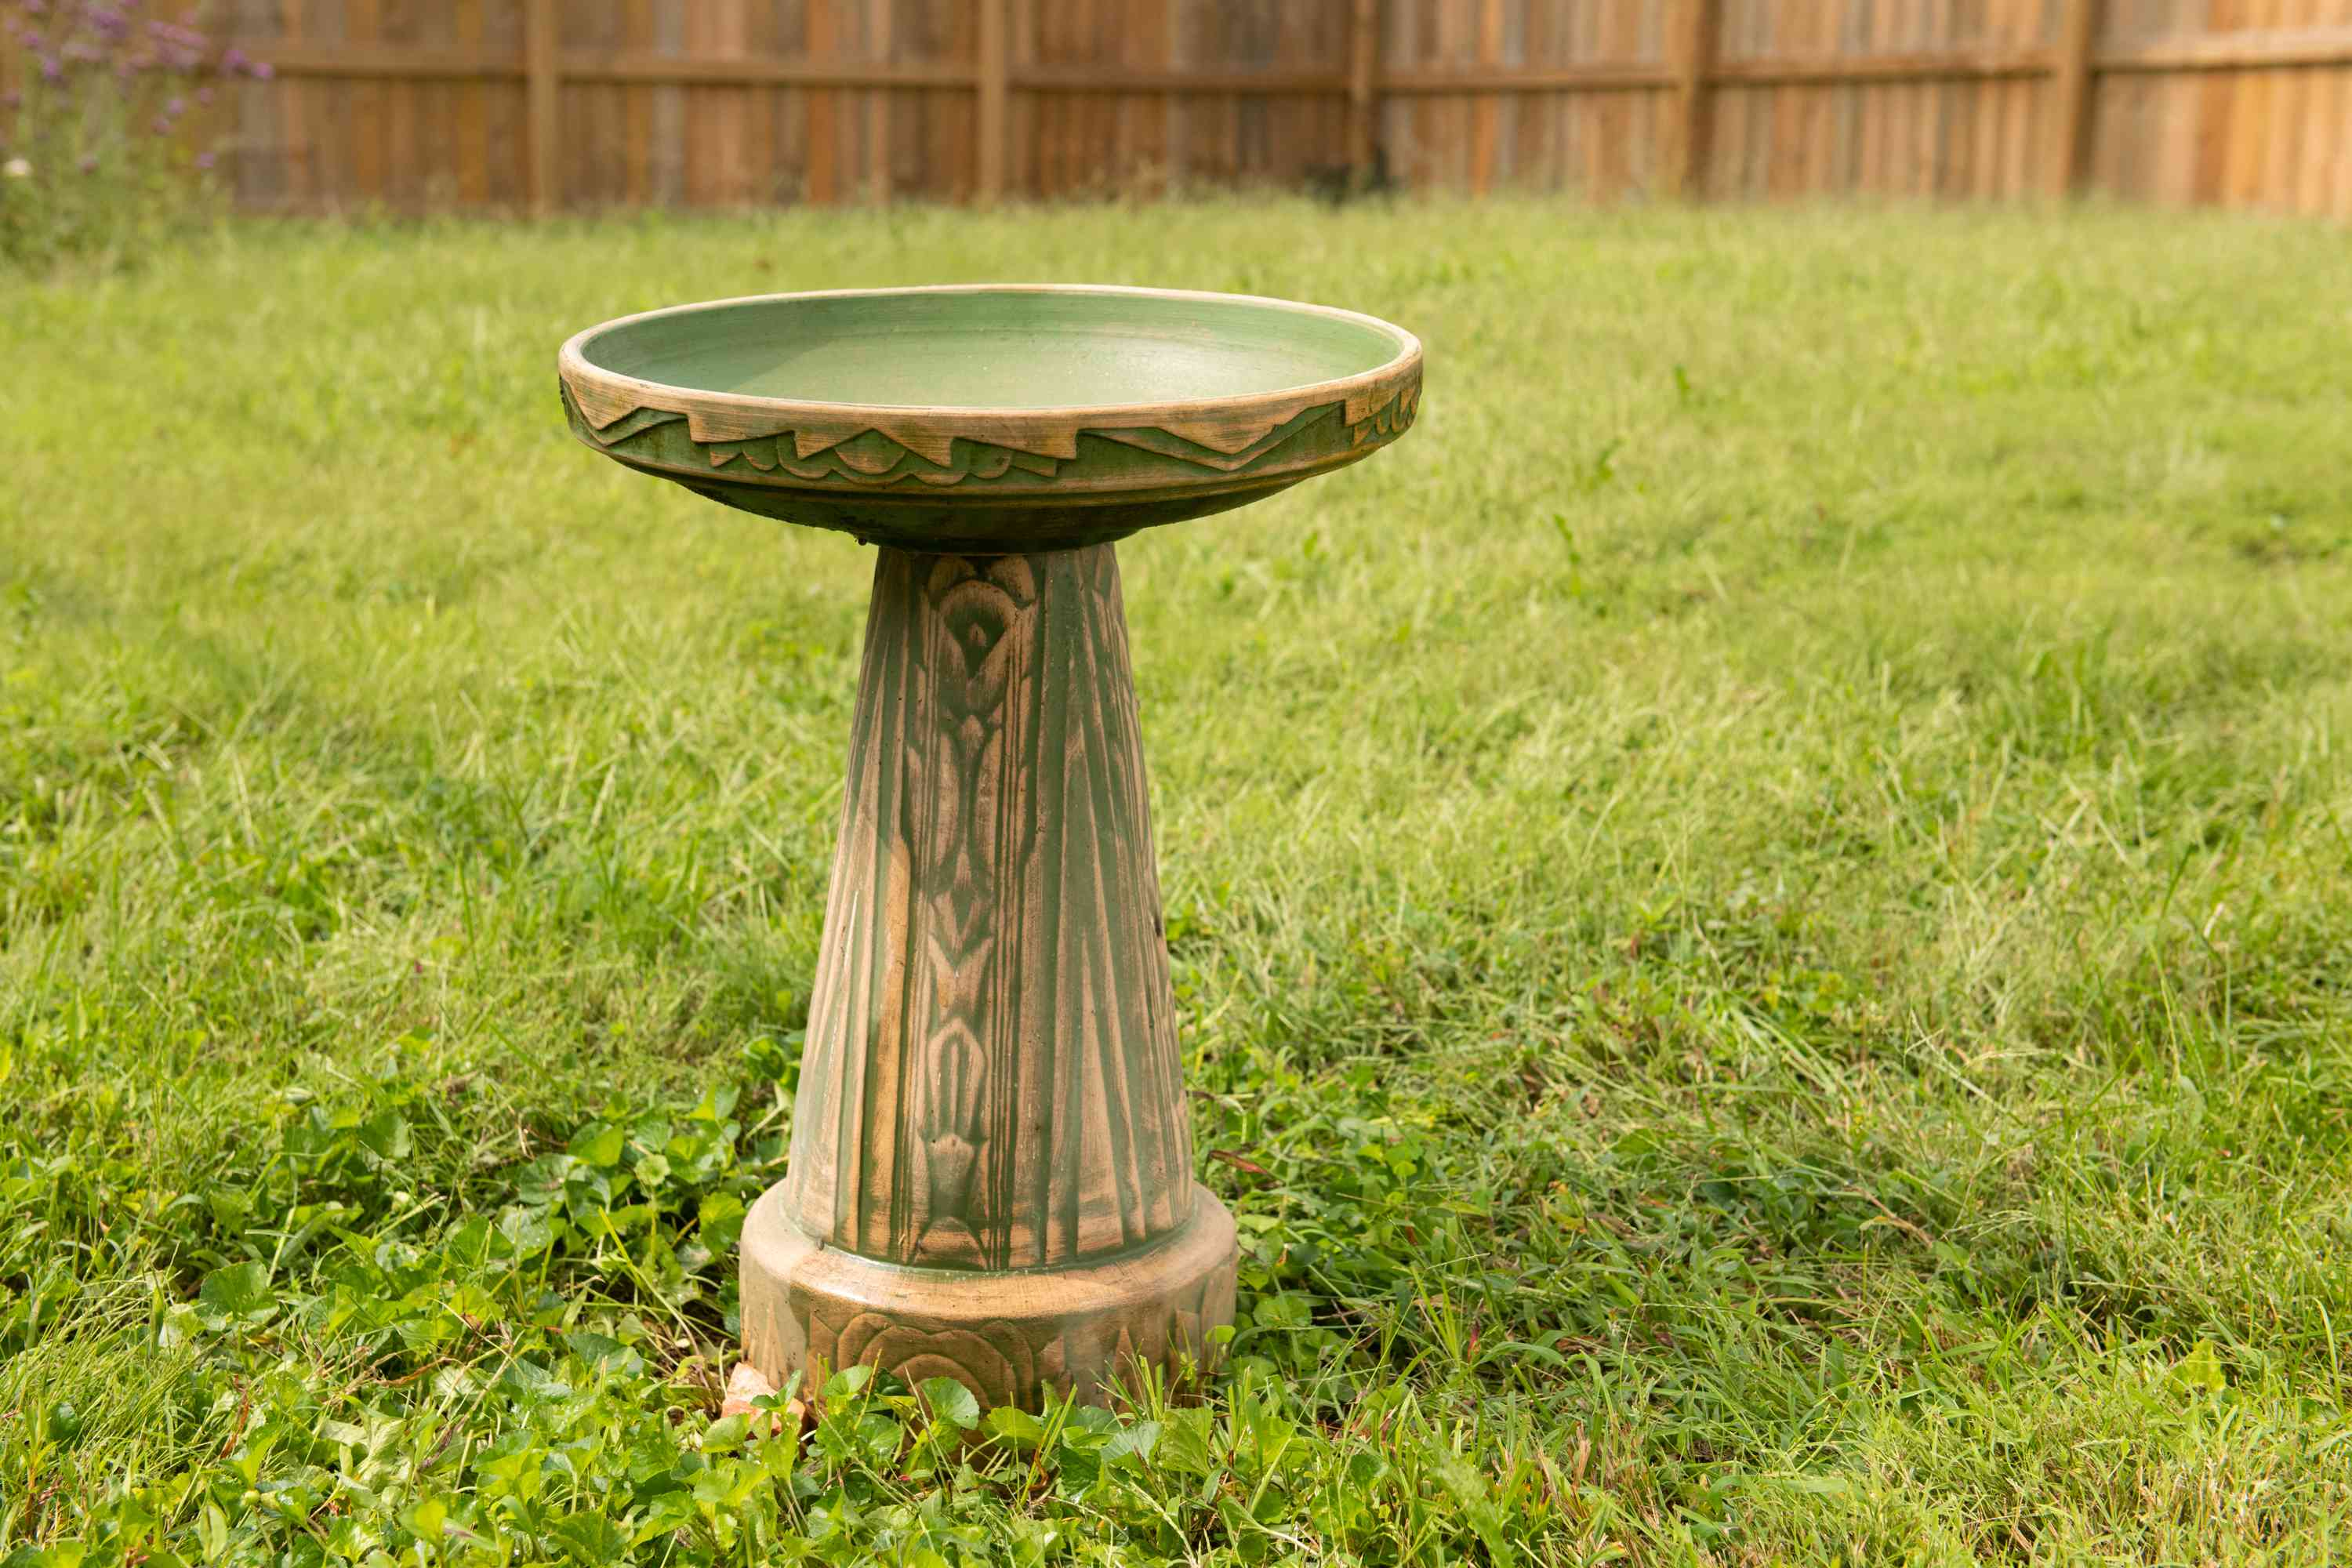 allowing the bird bath to dry